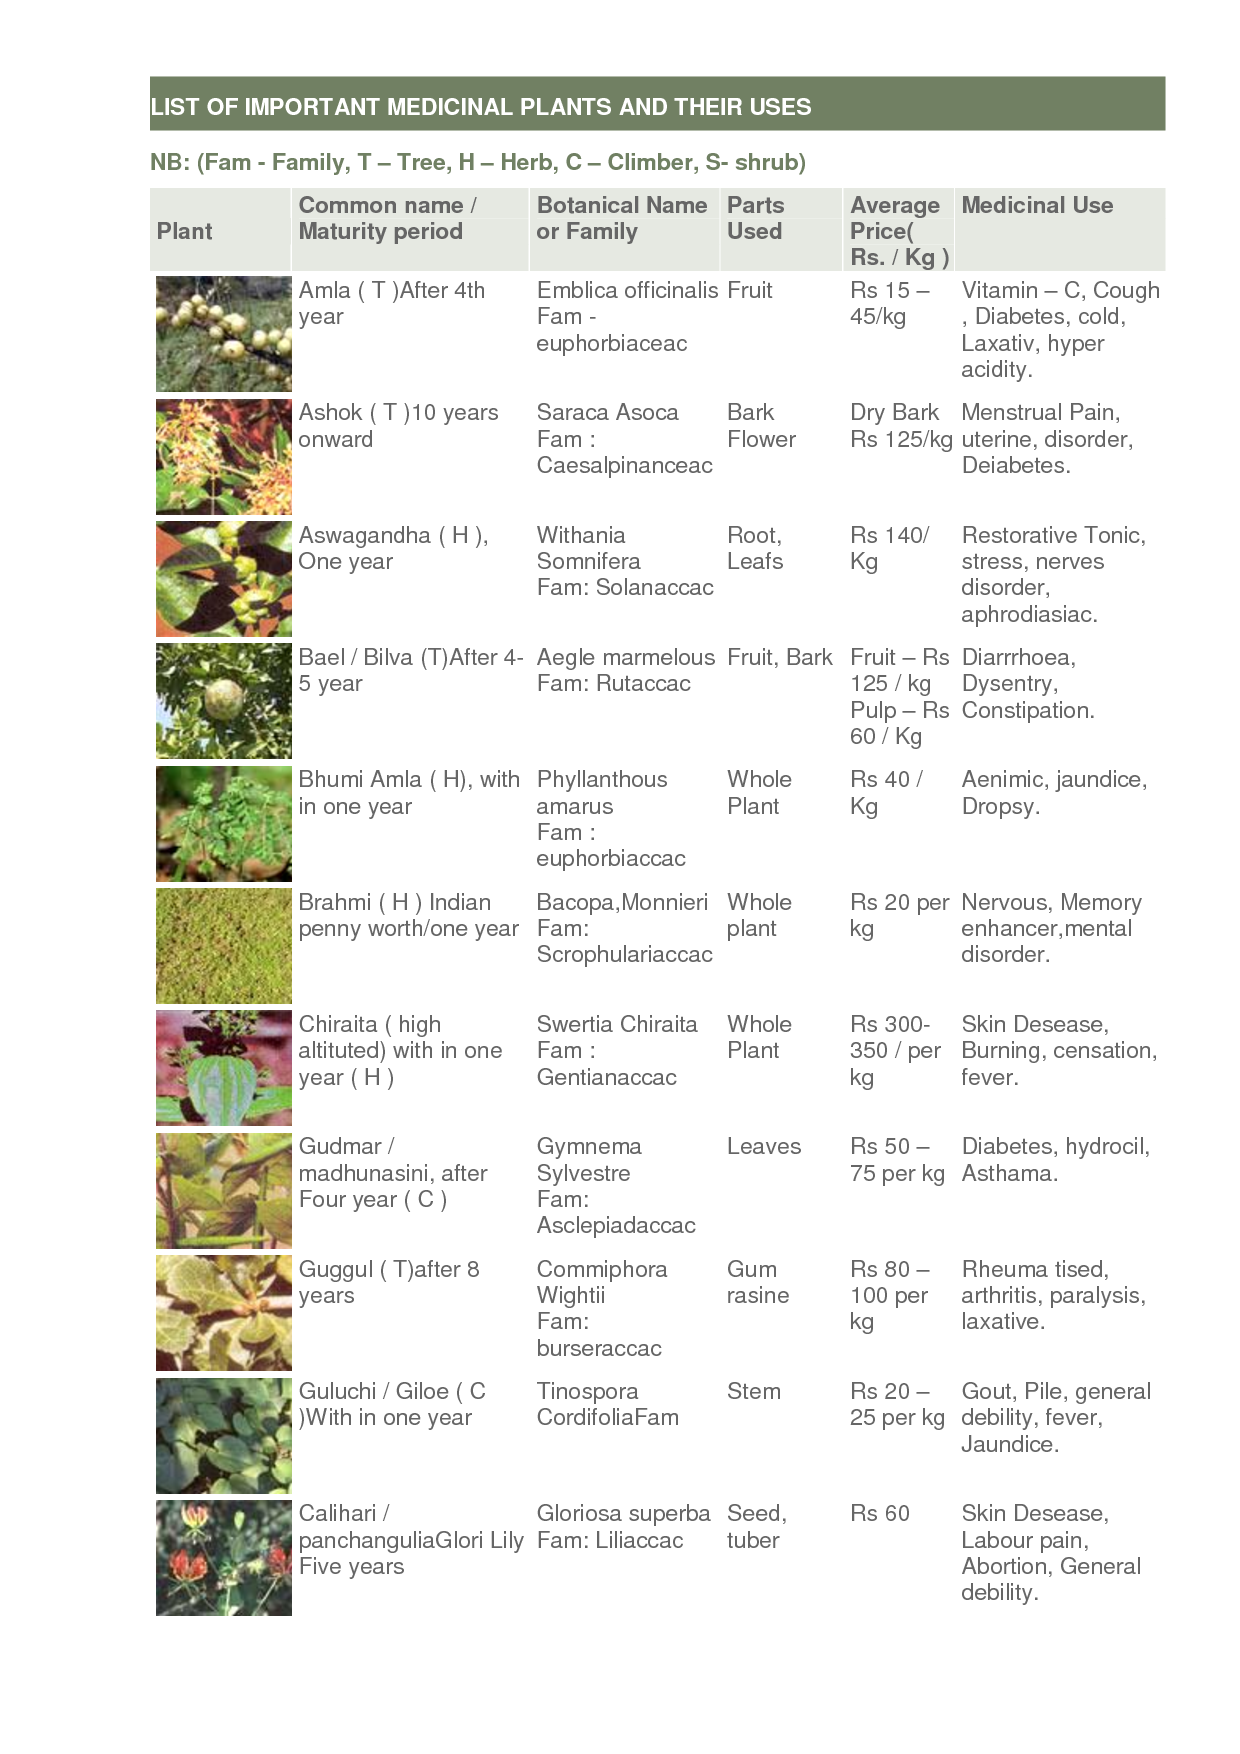 A list of some medicinal plants and their uses see it